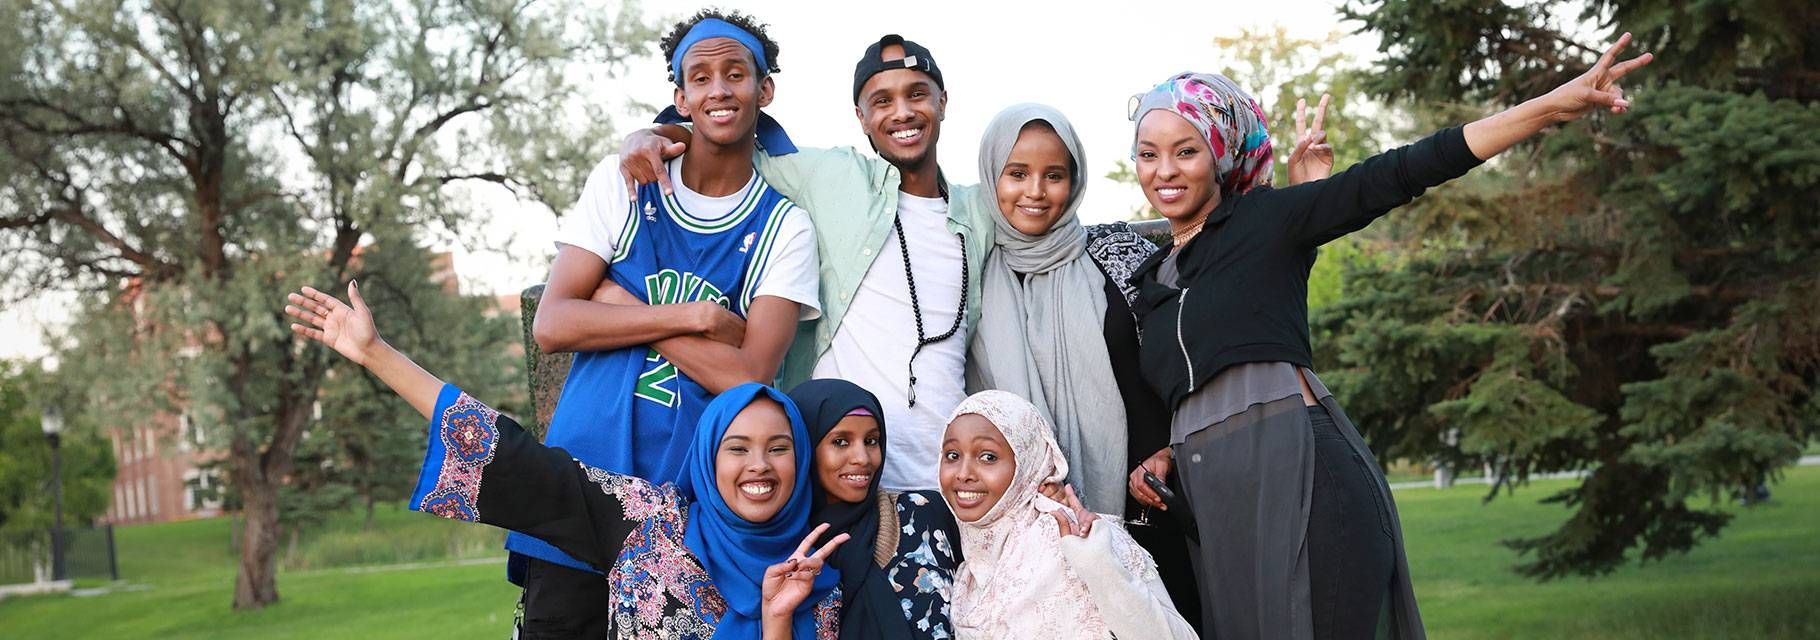 Students pose for a photo on campus